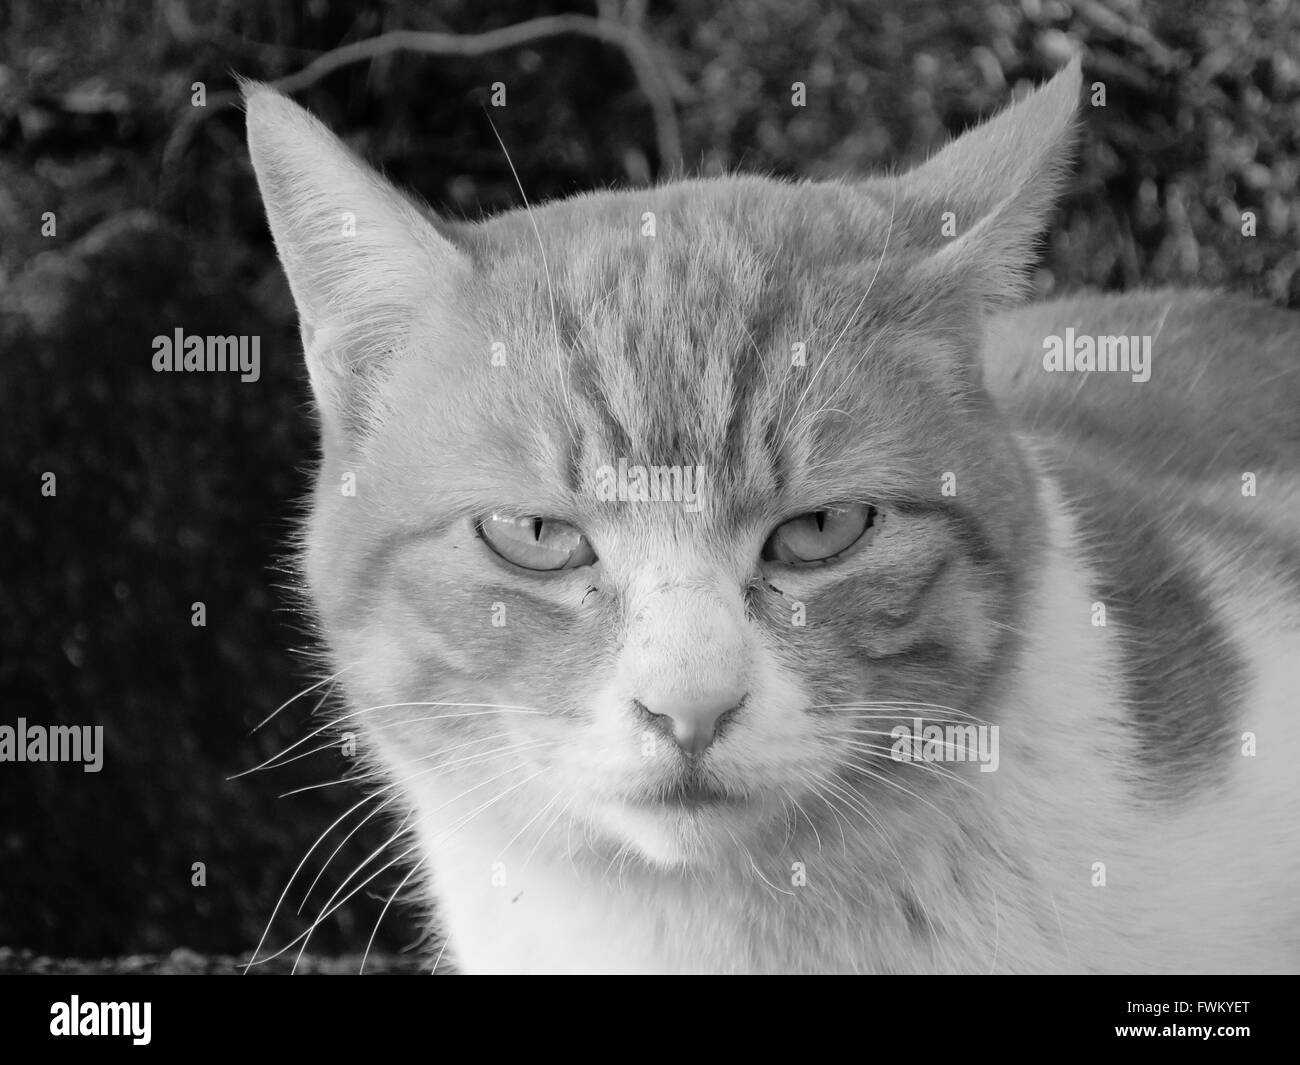 Close-Up Portrait Of Angry Cat Outdoors - Stock Image